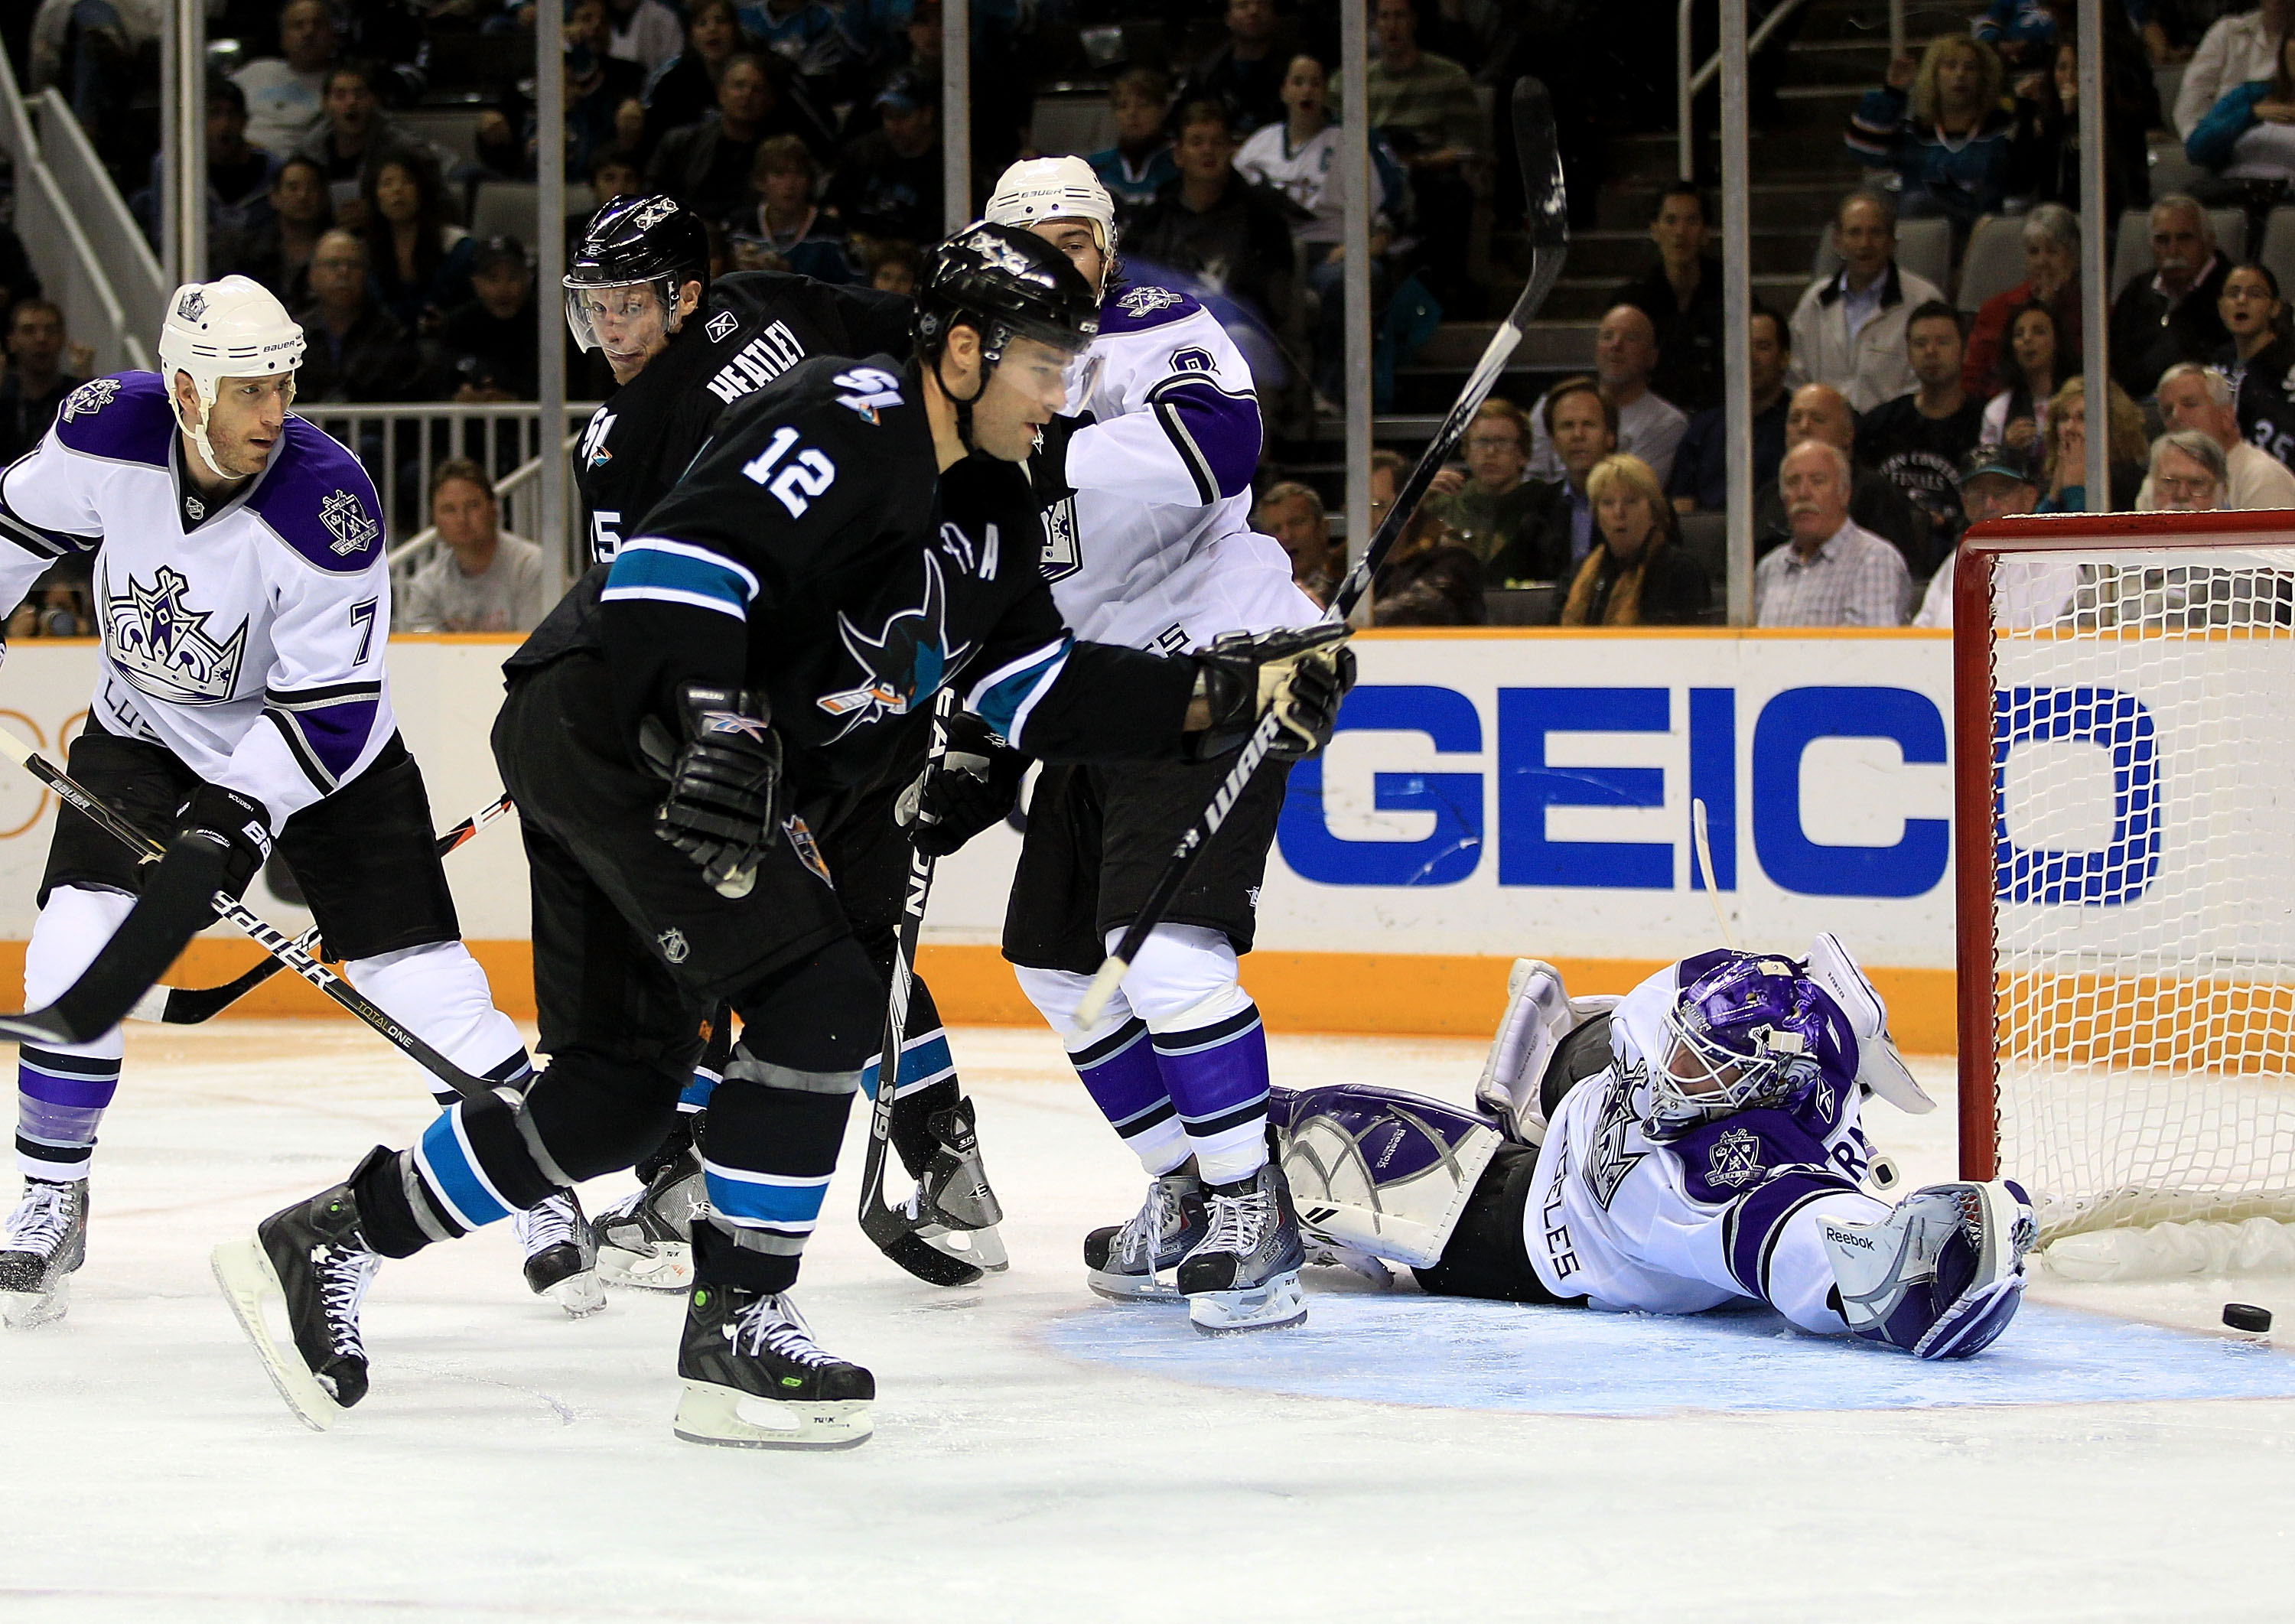 SAN JOSE, CA - NOVEMBER 15:  Patrick Marleau #12 of the San Jose Sharks scores a goal past a diving Jonathan Bernier #45 of the Los Angeles Kings at HP Pavilion on November 15, 2010 in San Jose, California.  (Photo by Ezra Shaw/Getty Images)